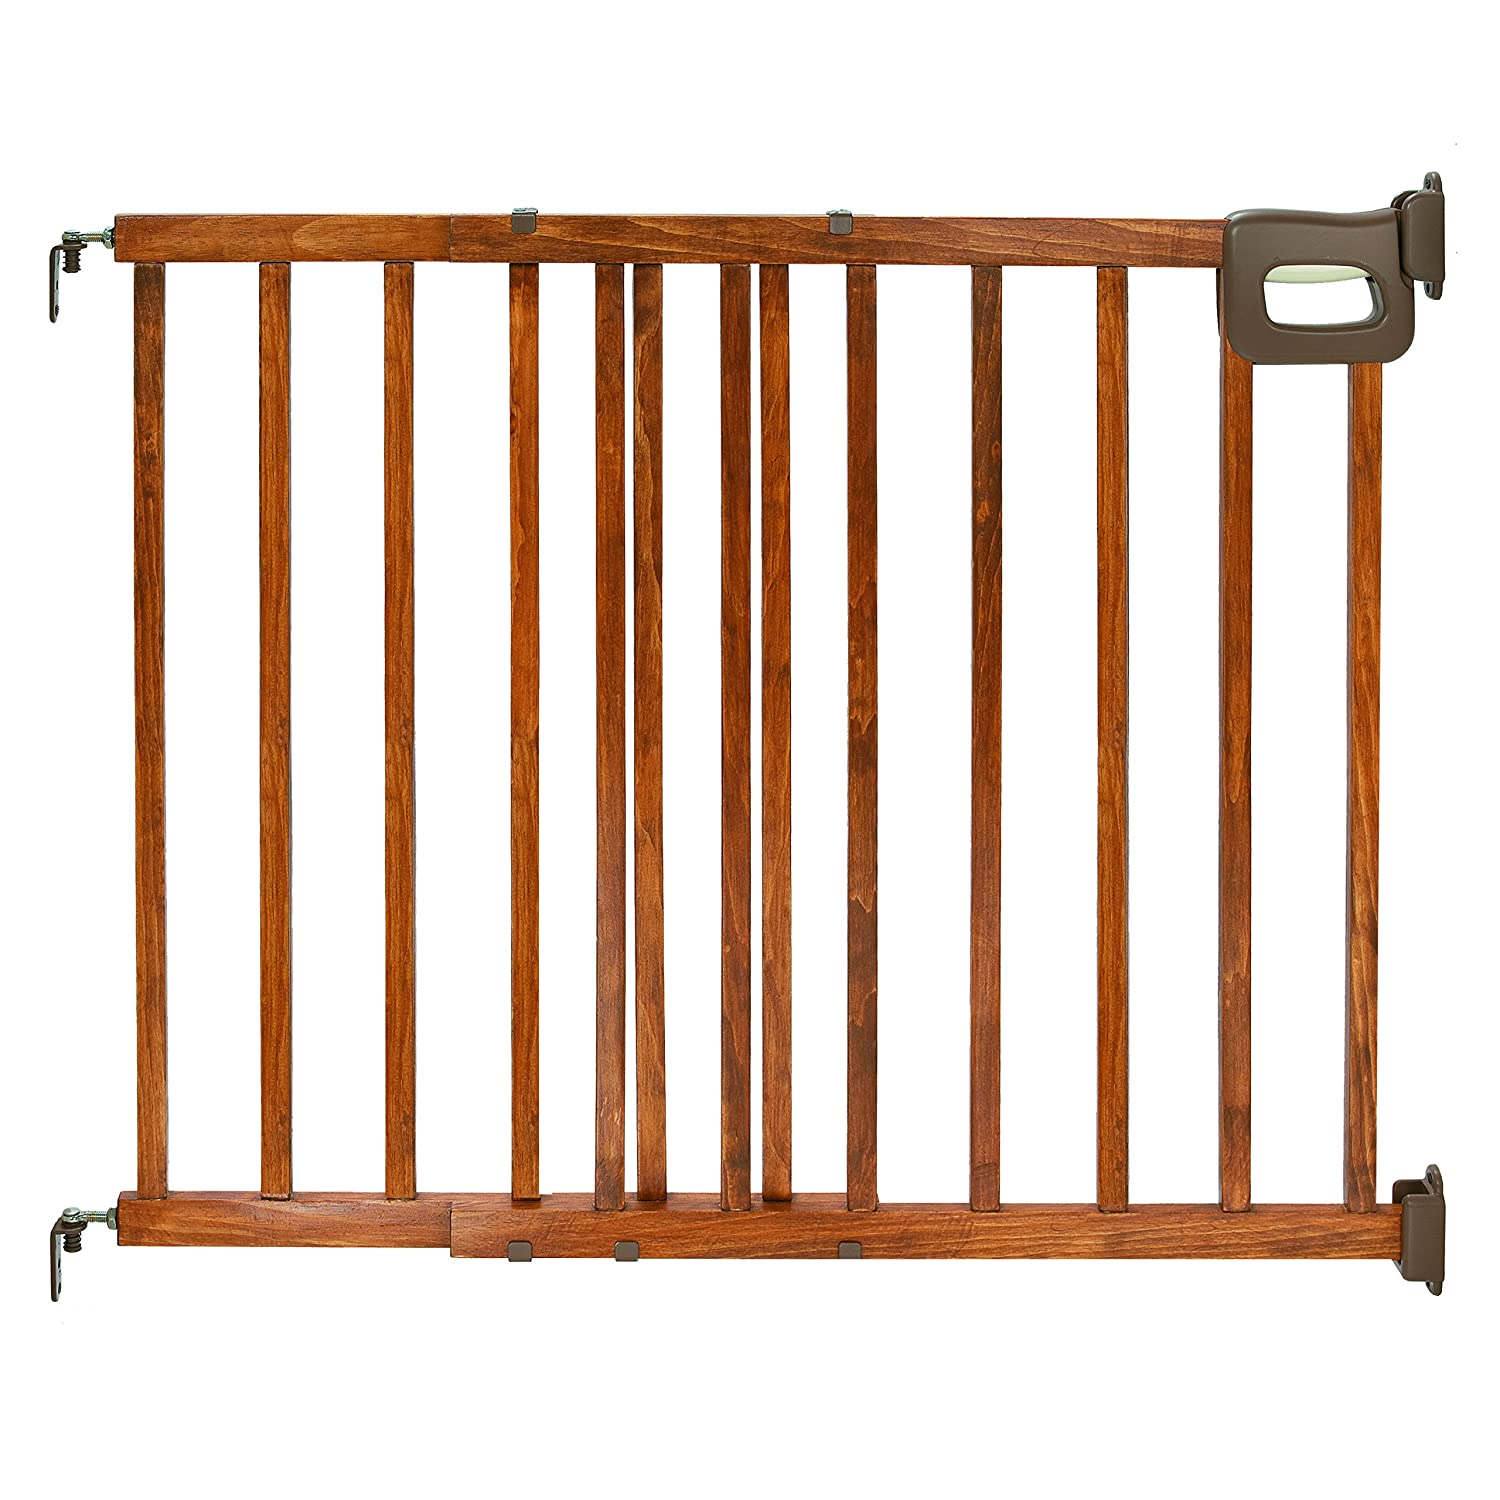 Amazon.com : Summer Infant Deluxe Stairway Simple To Secure Wood Gate : Baby